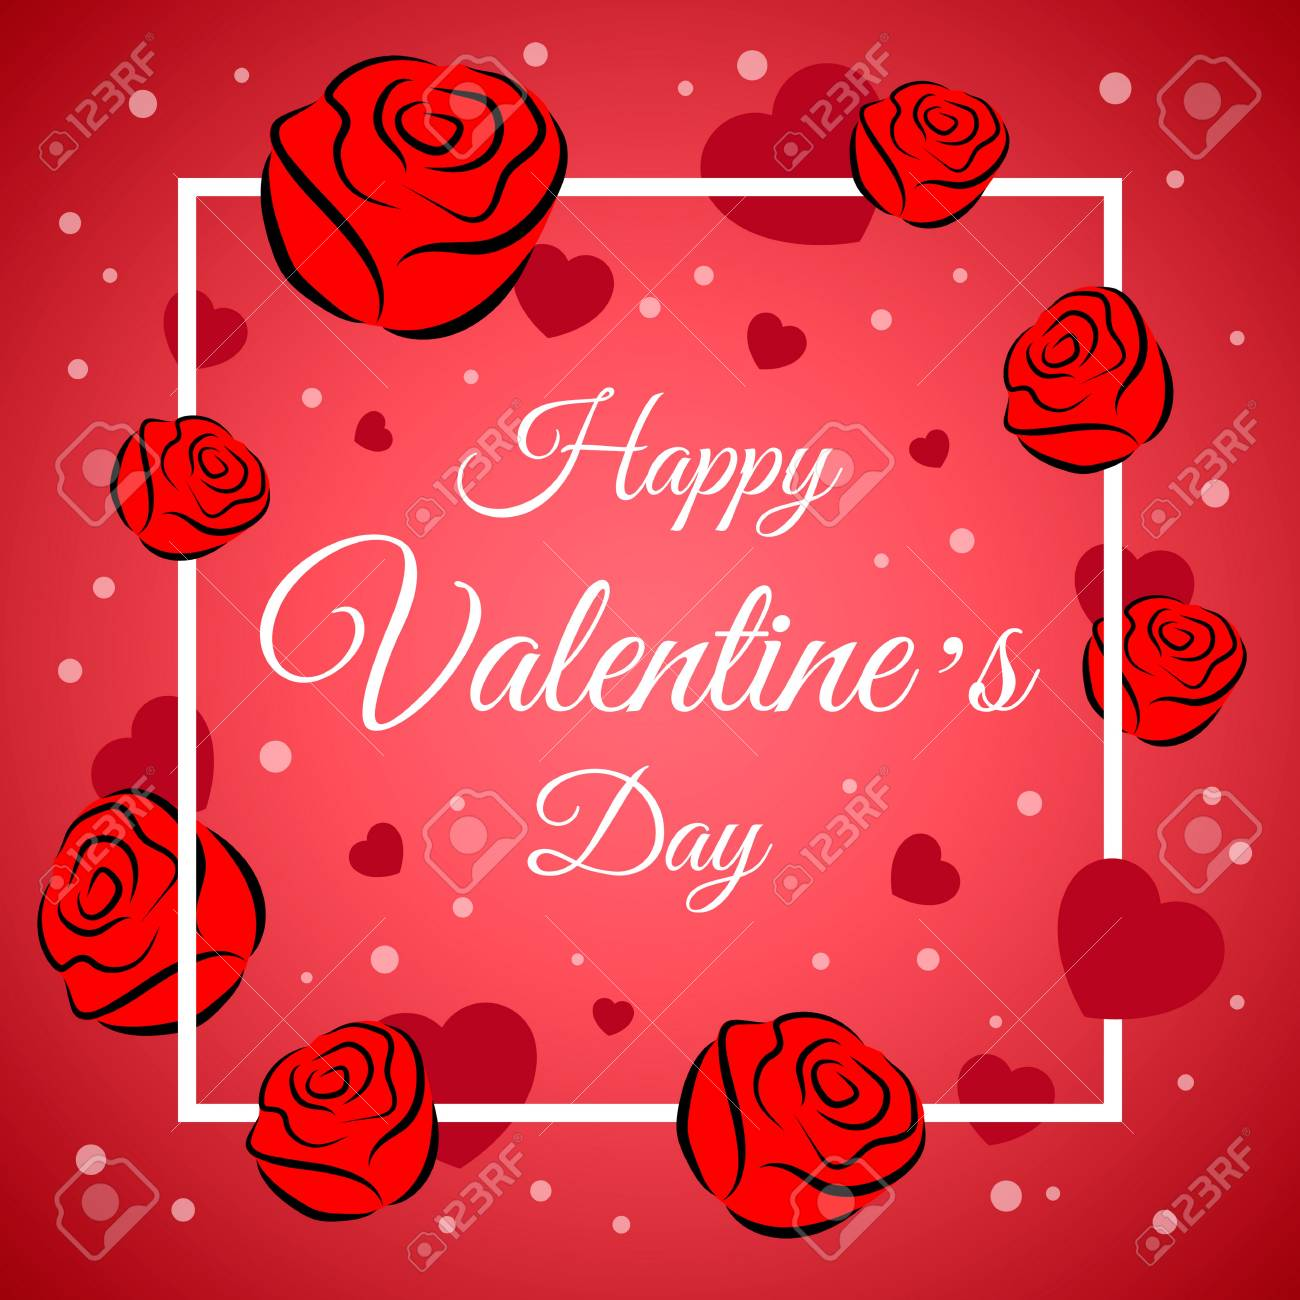 Vector Illustration With Happy Valentines Day Greeting Card On